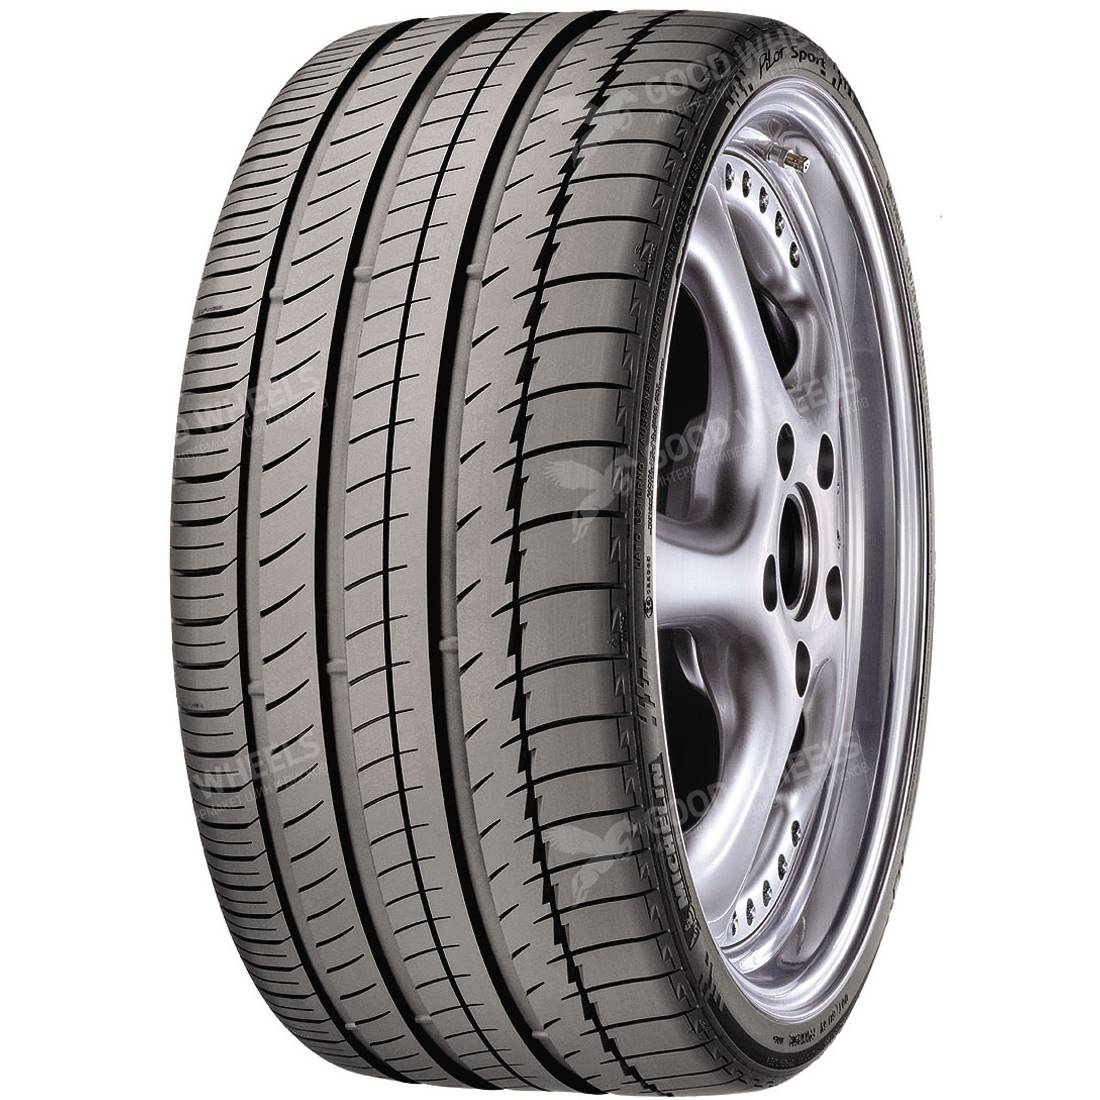 Michelin Pilot Sport 2 (PS2) 295/30 R18 98Y